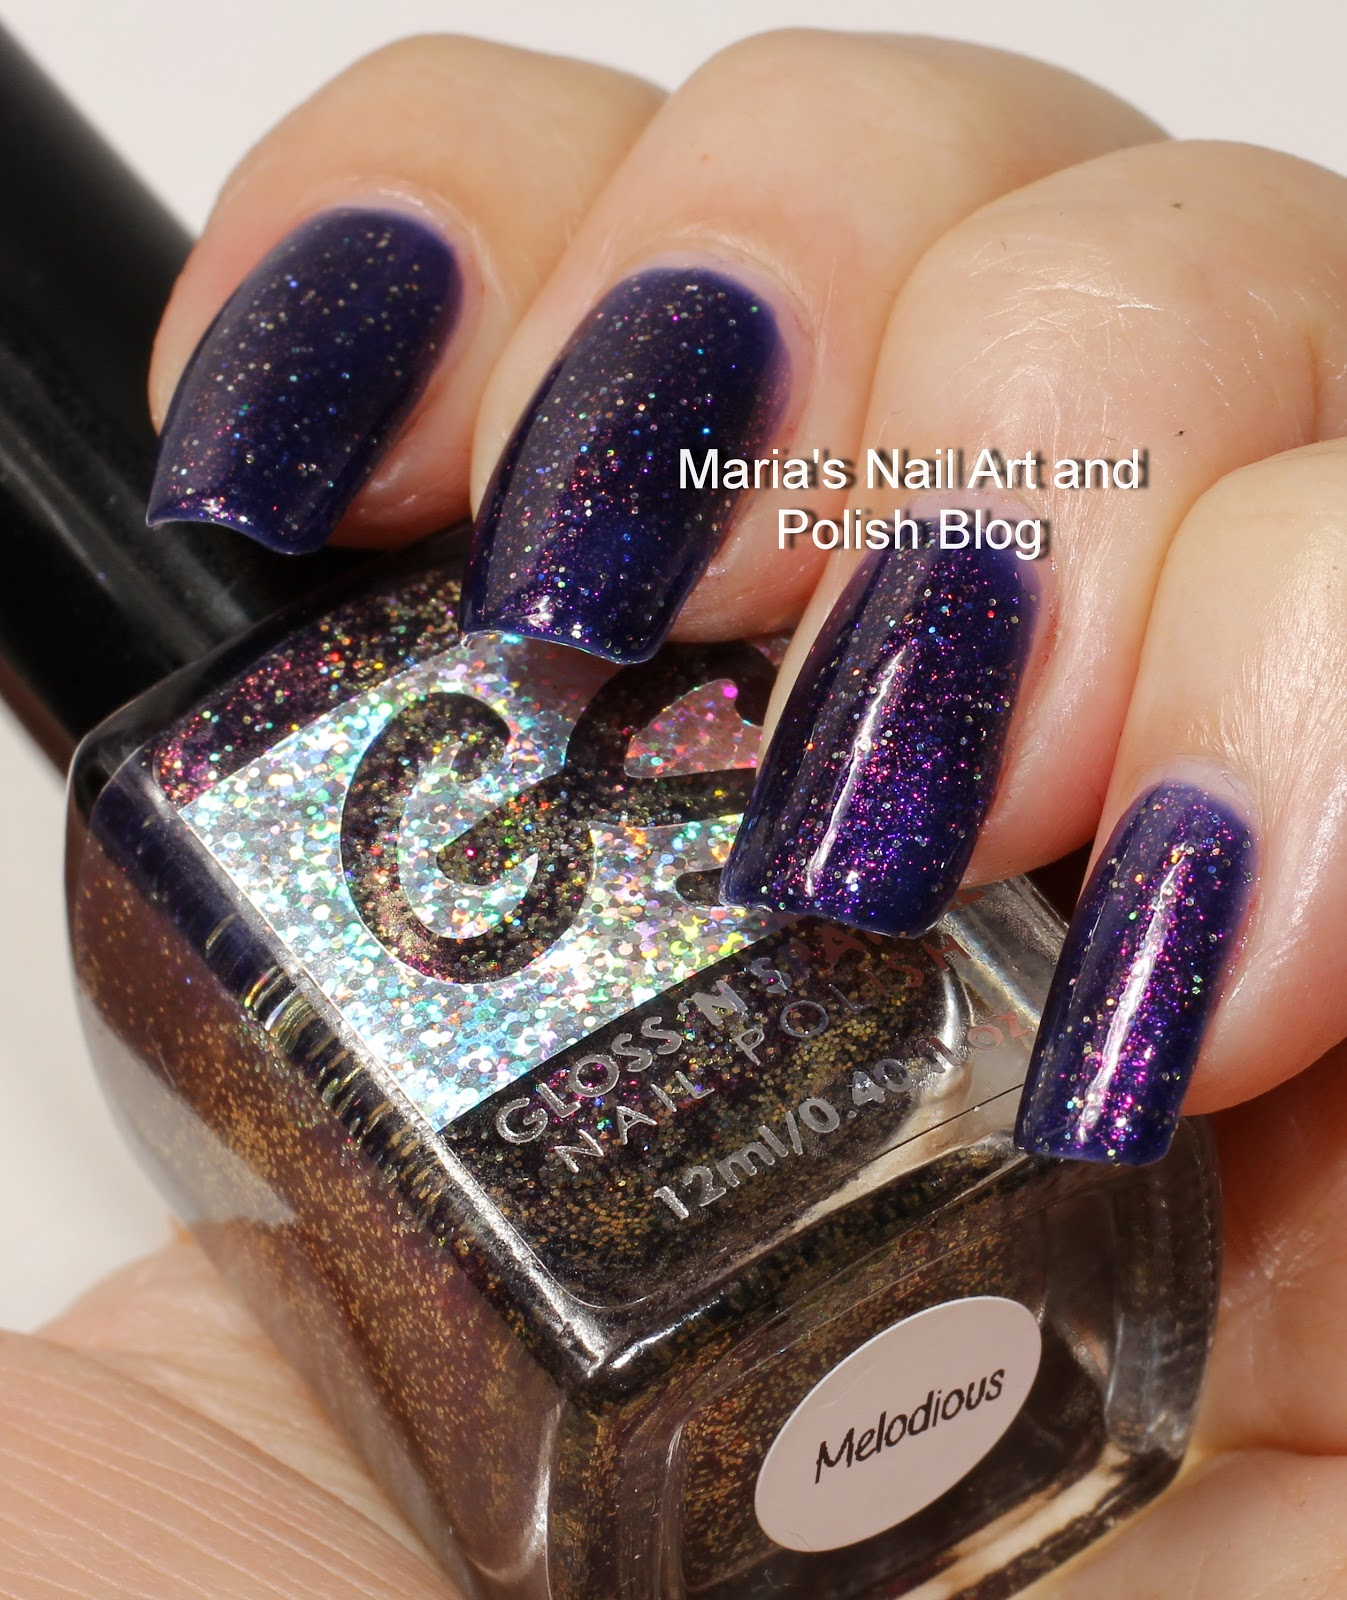 Marias Nail Art And Polish Blog Flushed With Stripes And: Marias Nail Art And Polish Blog: Gloss 'n Sparkle